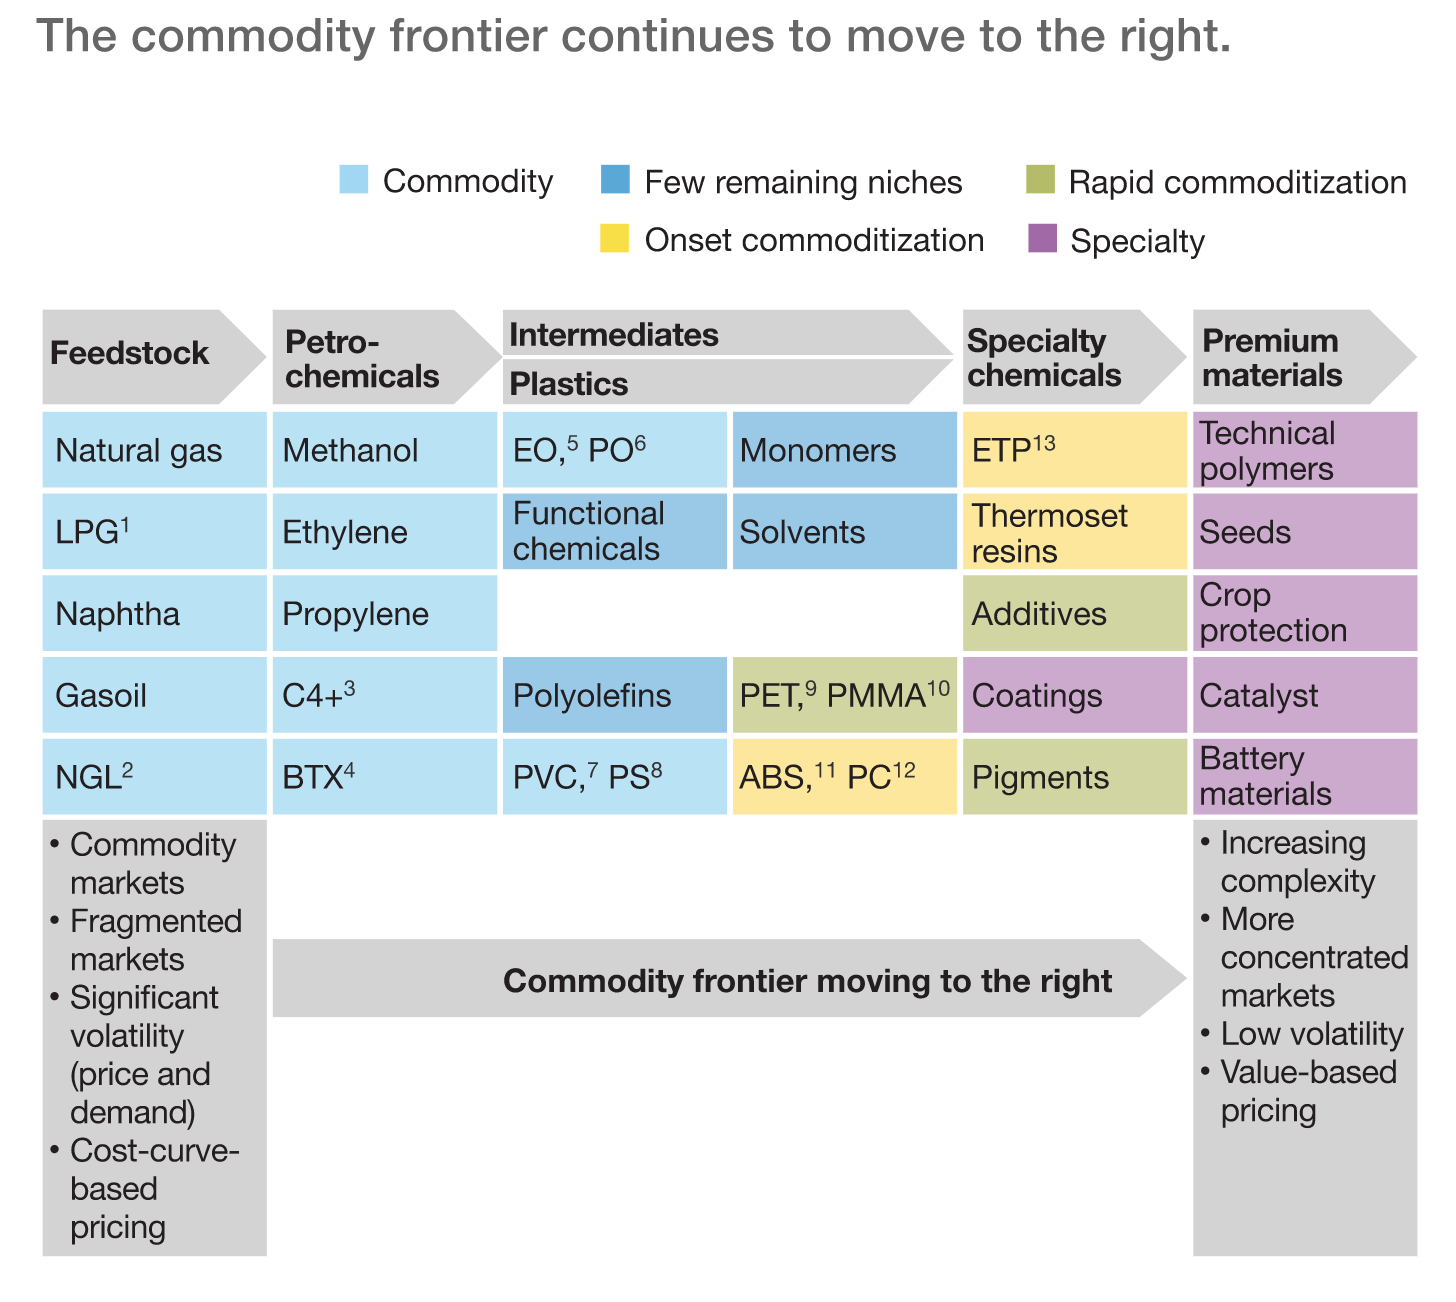 Batch analytics - the commodity frontier